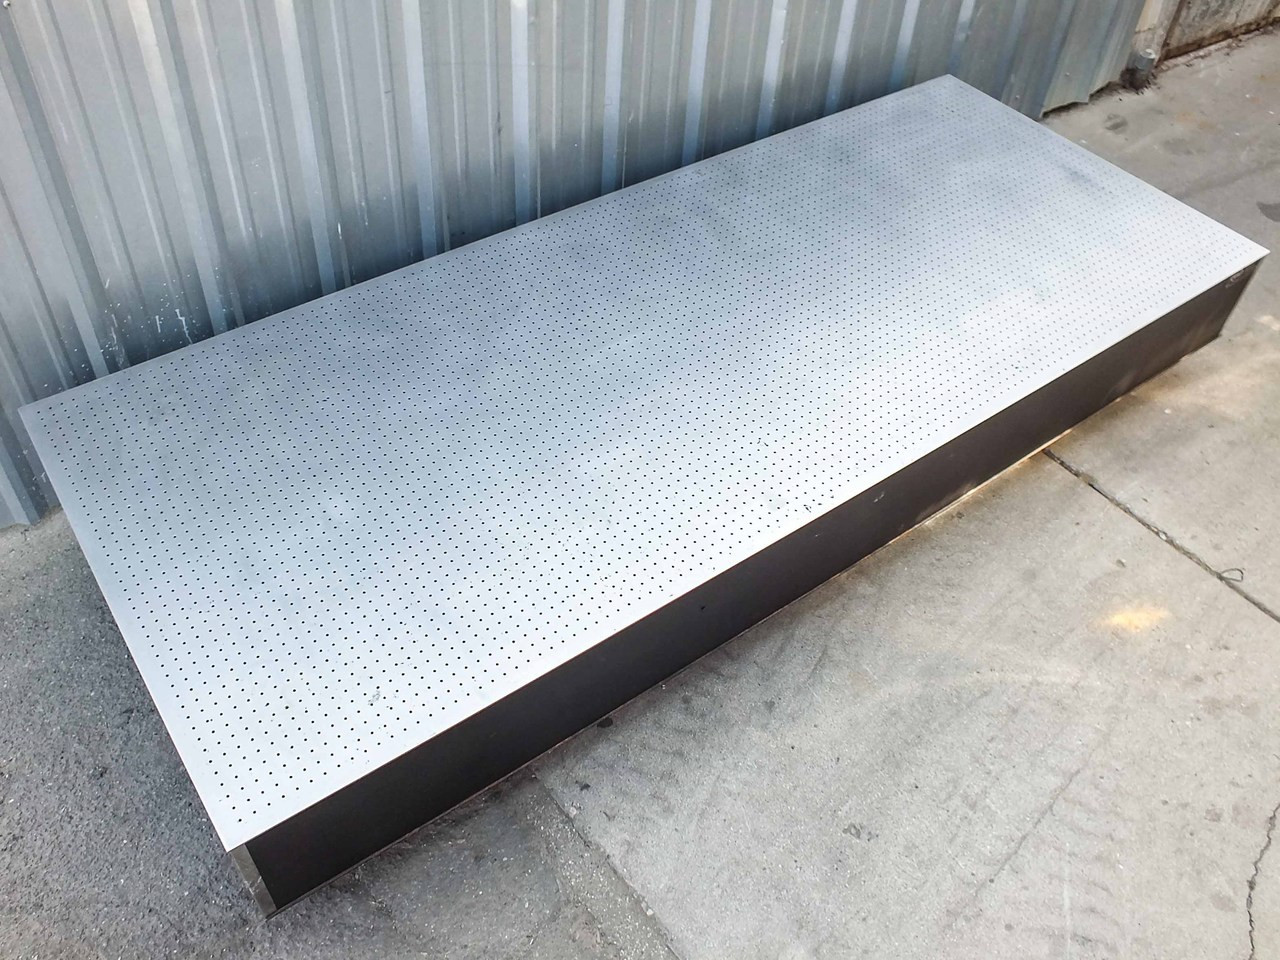 Newport Nrc 10 X 4 X 12 Quot Stainless Steel Optical